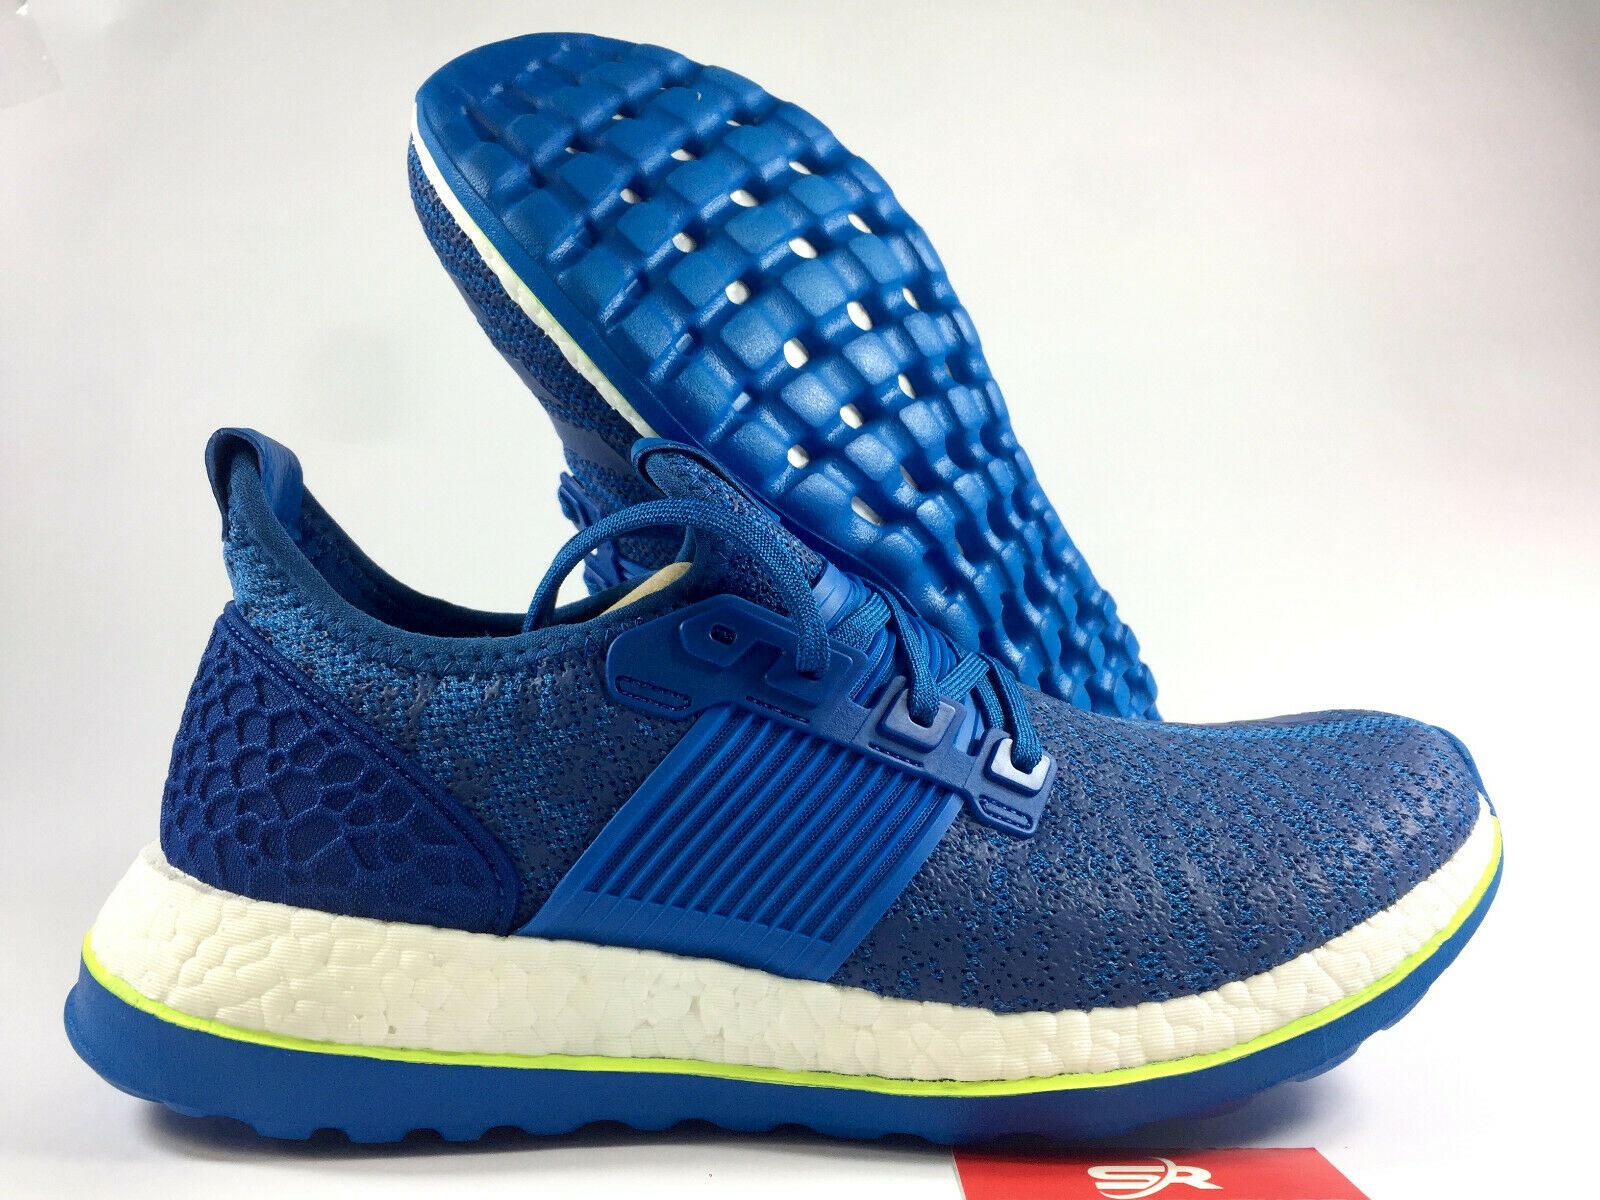 New 9.5 adidas Pure Boost Boost Boost ZG Running shoes AQ2929 bluee White Mens 74287a